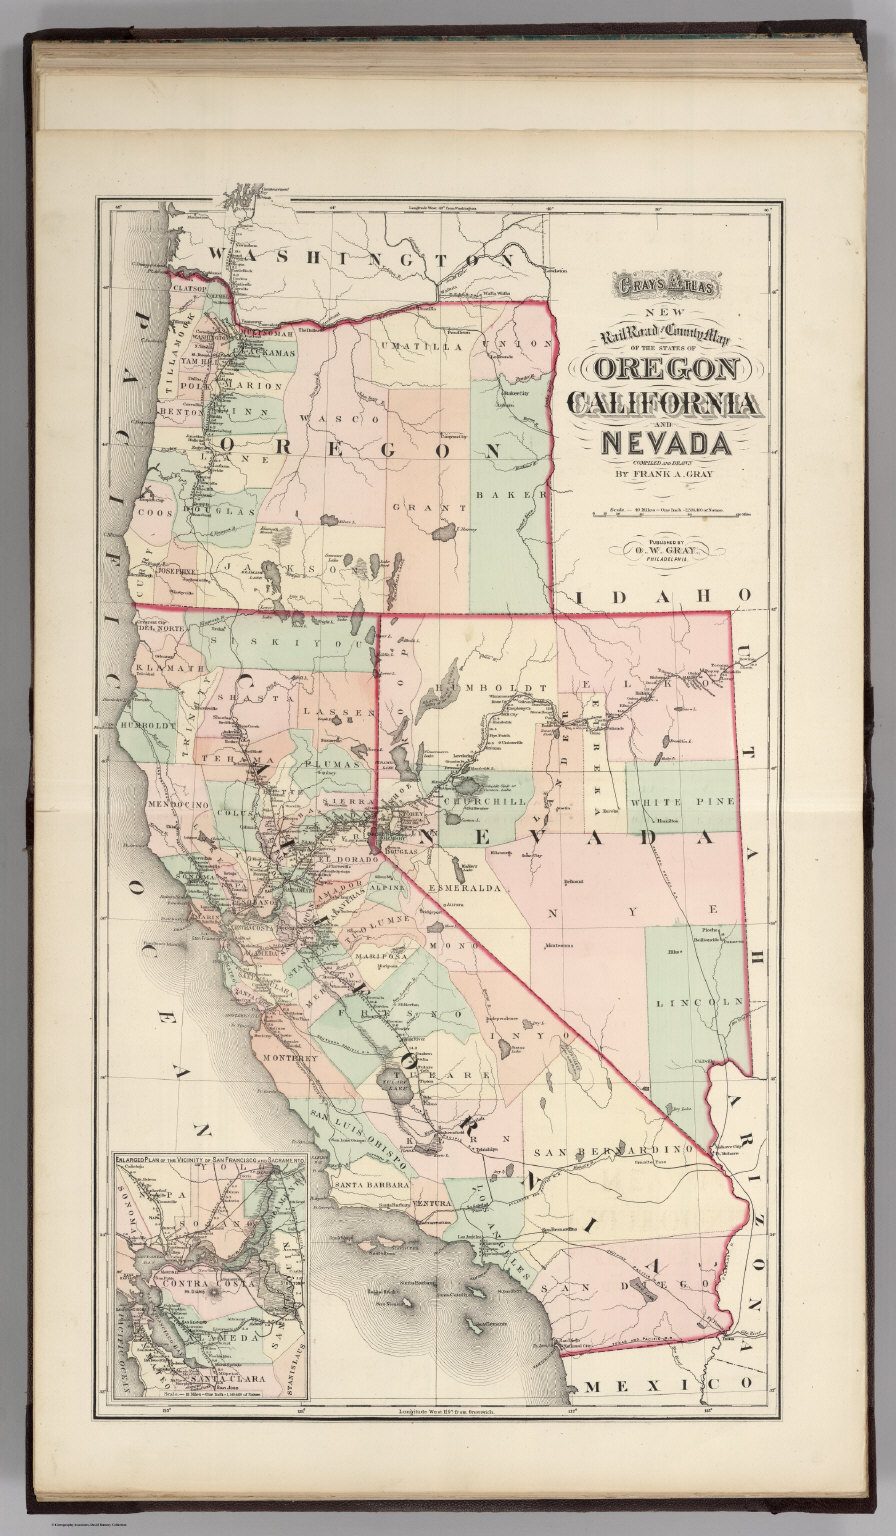 Railroad map of Oregon, California, and Nevada.